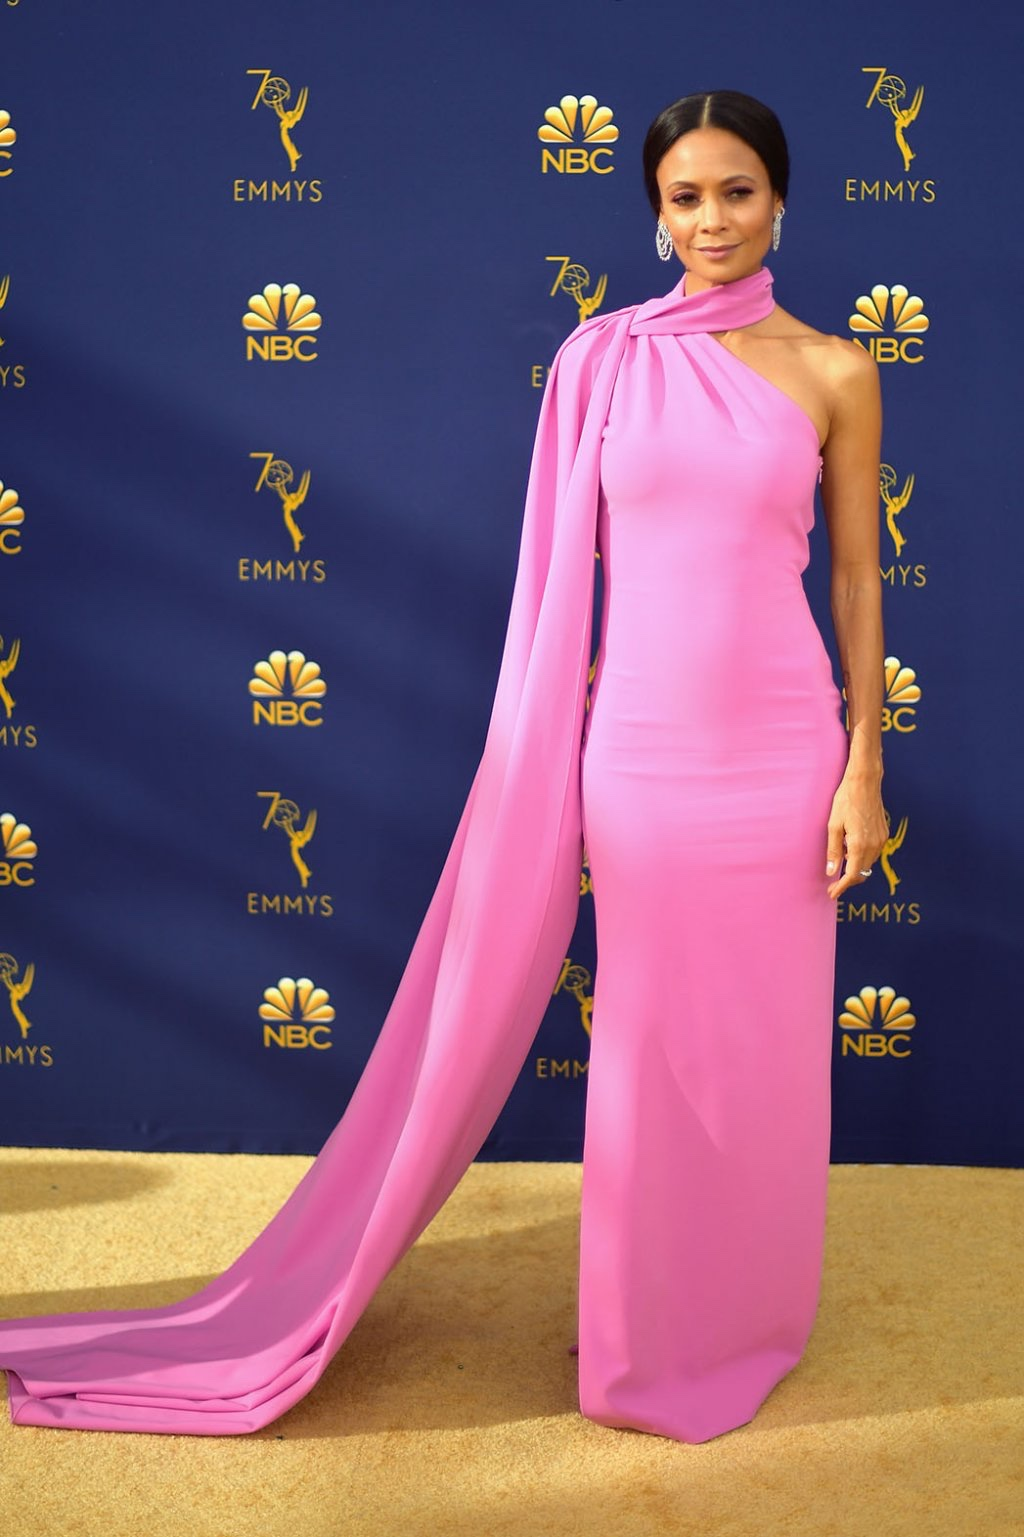 Thandie Newton in Brandon Maxwell, 70th Annual Primetime Emmy Awards, Betty White, Emmys 2018, Fashion, Featured, Glenn Weiss, Hannah Gadsby, highlights, Jav Svendsen, Online Exclusive, Style, The Marvellous Mrs. Maisel, top moments, We solved it, Diversity